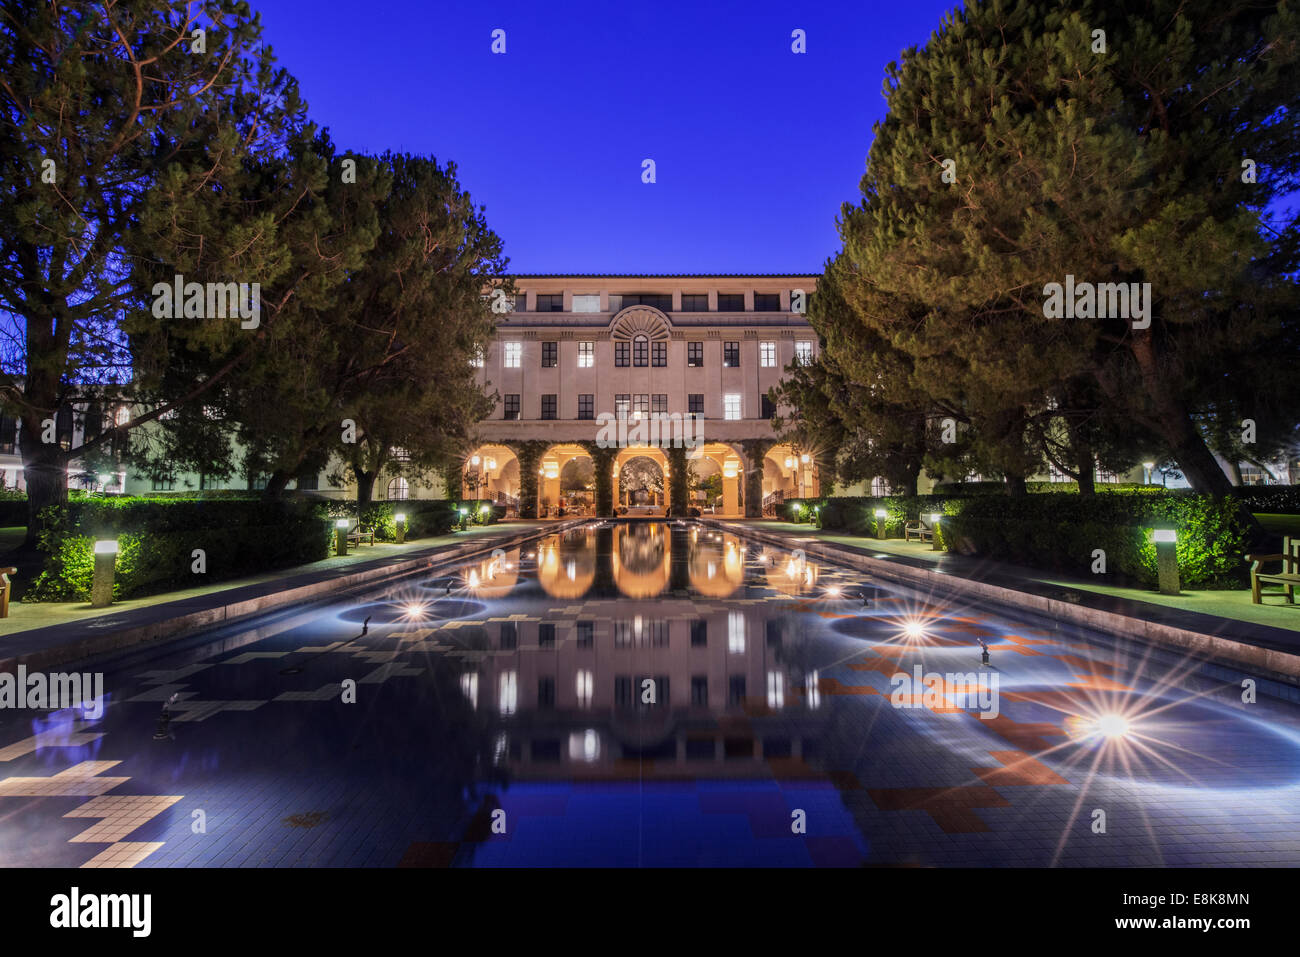 USA, California, Pasadena, California Institute of Technology, Beckman Institute Reflecting Pool Stock Photo